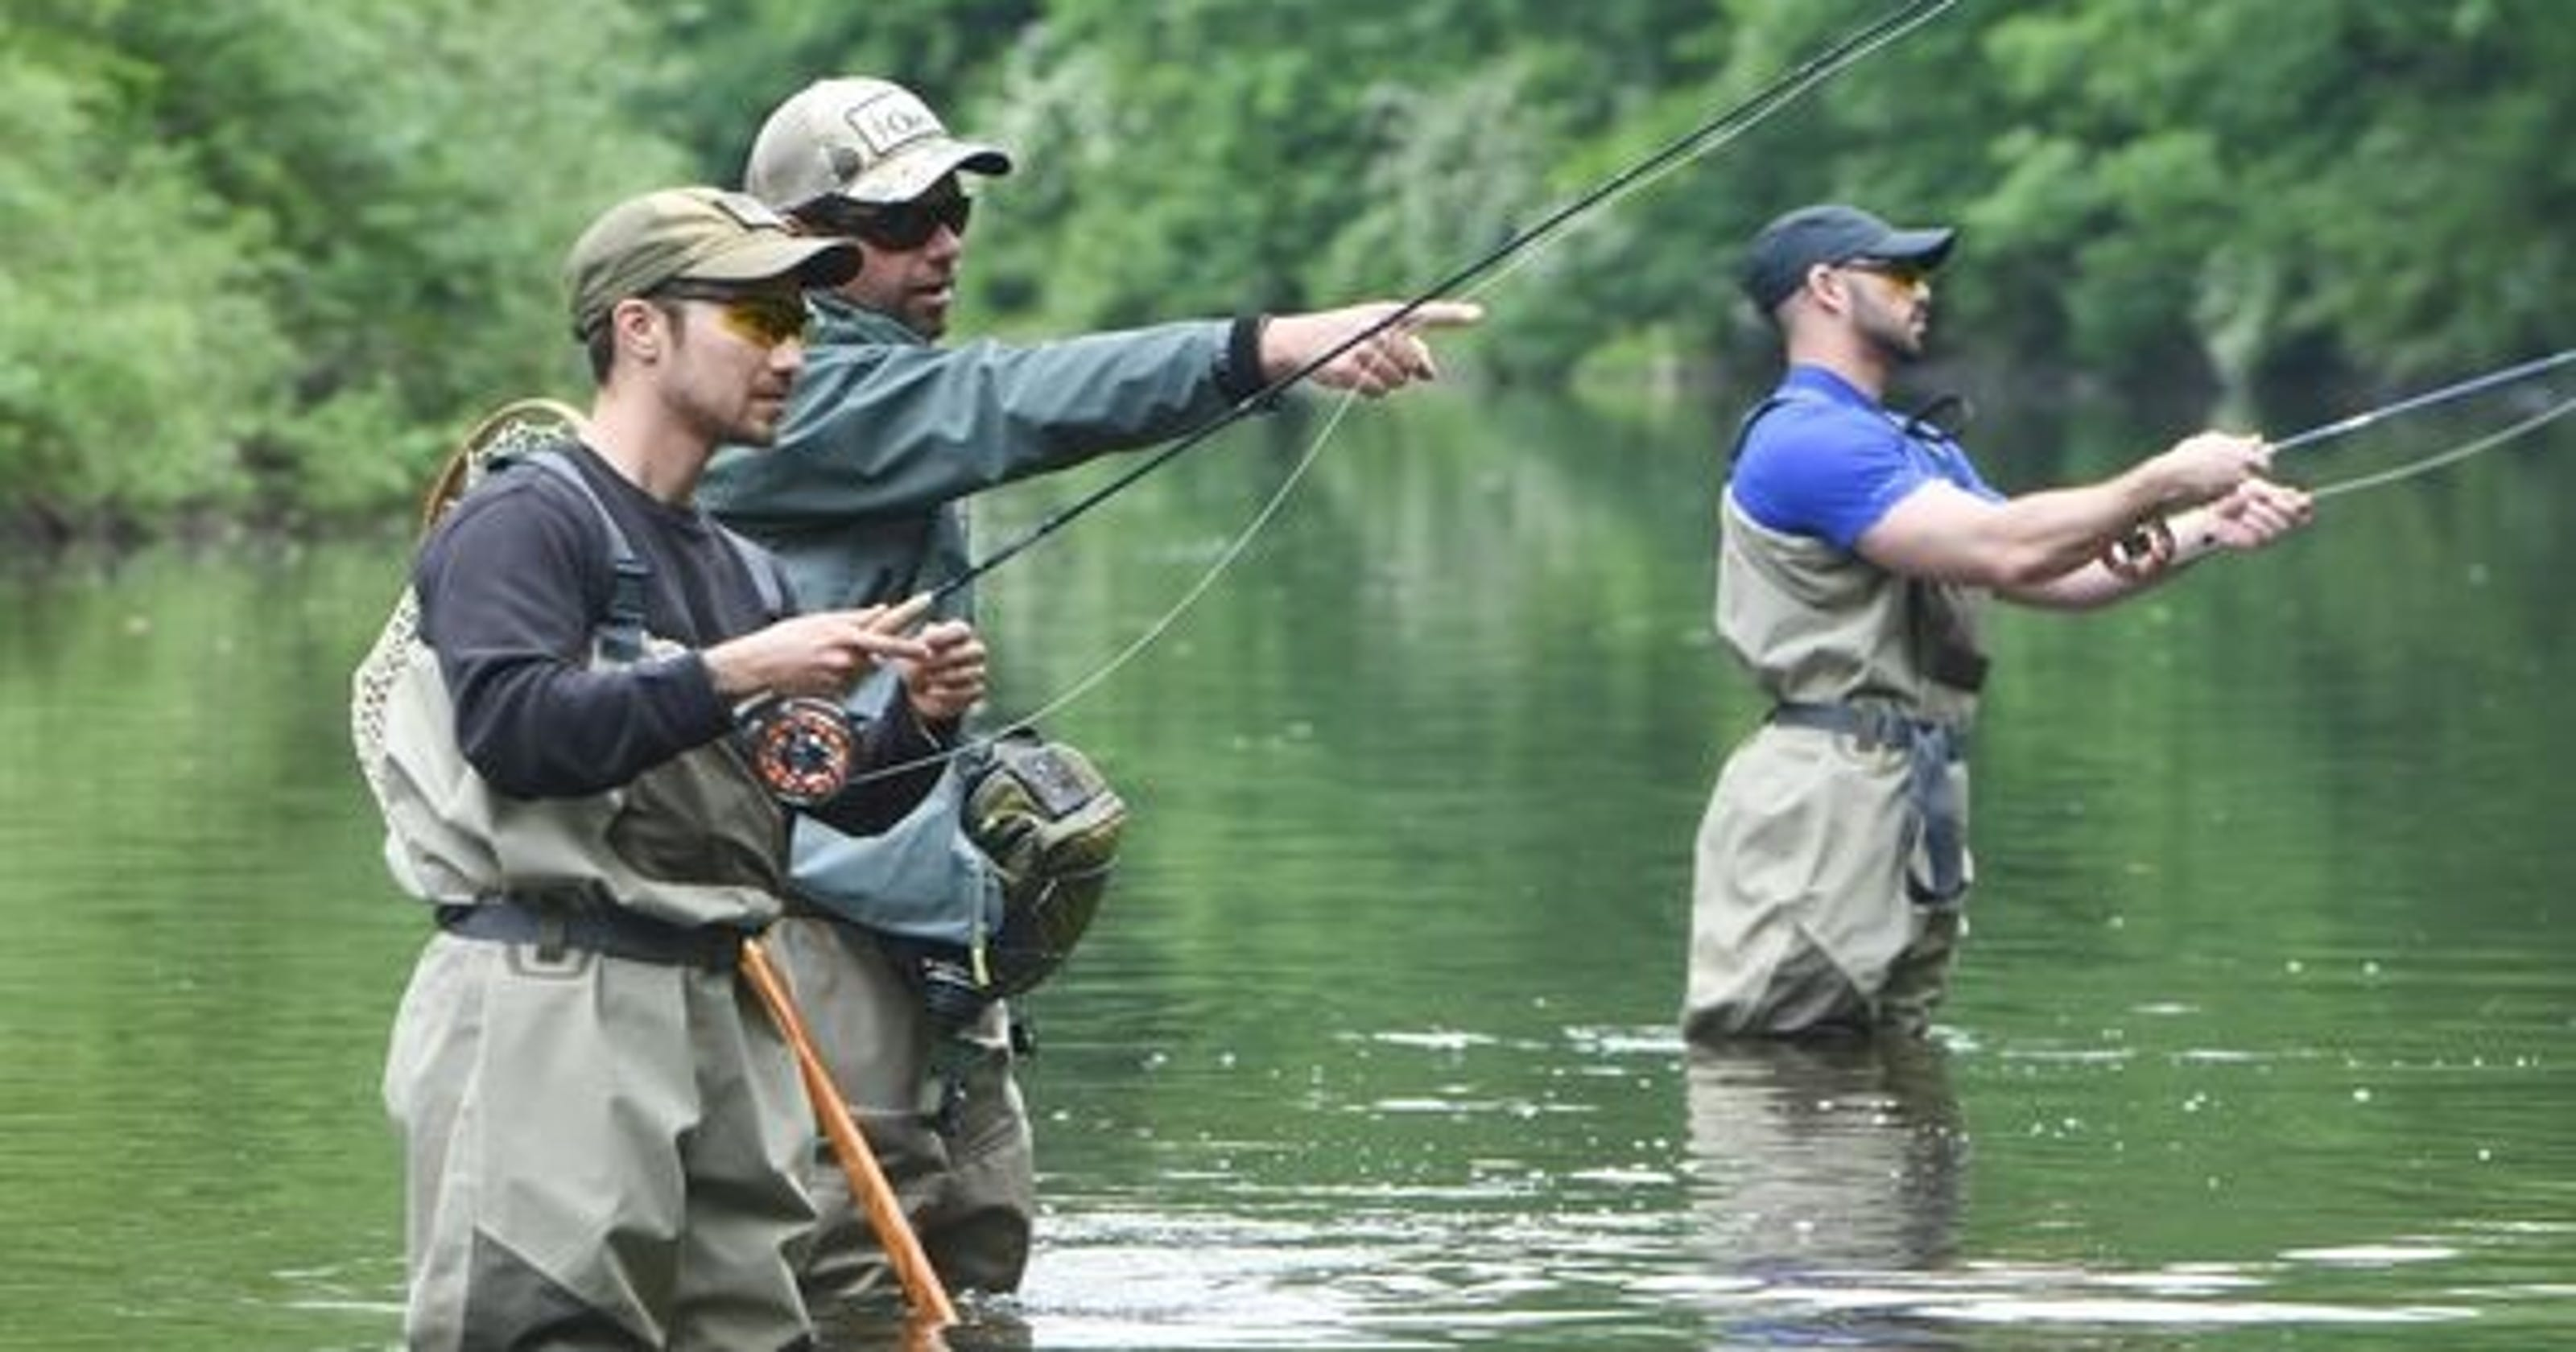 State to stock fishing streams, some sooner than others